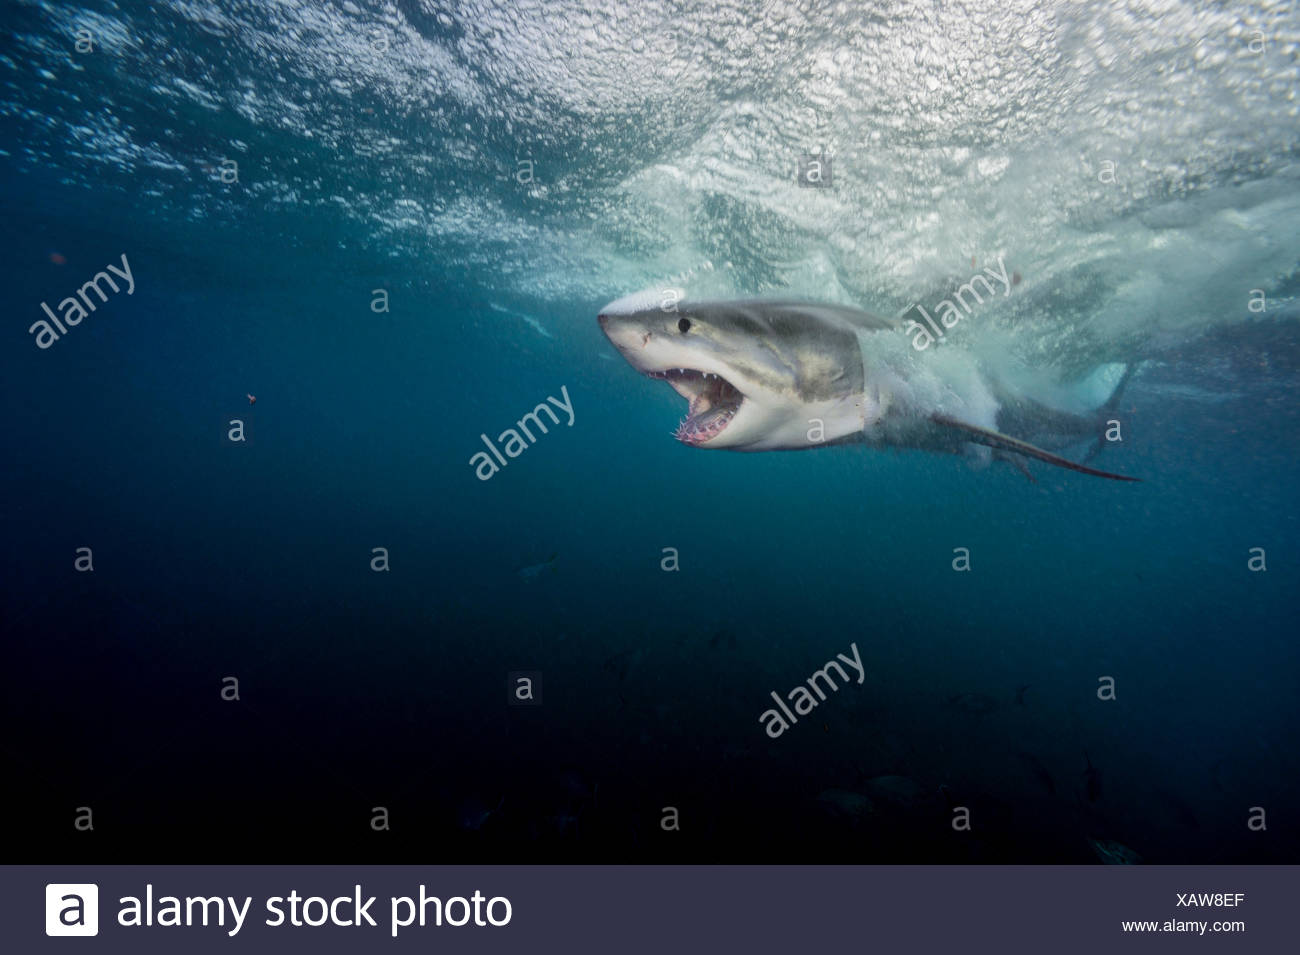 A large great white shark explodes through the water near the Neptune Islands. Stock Photo